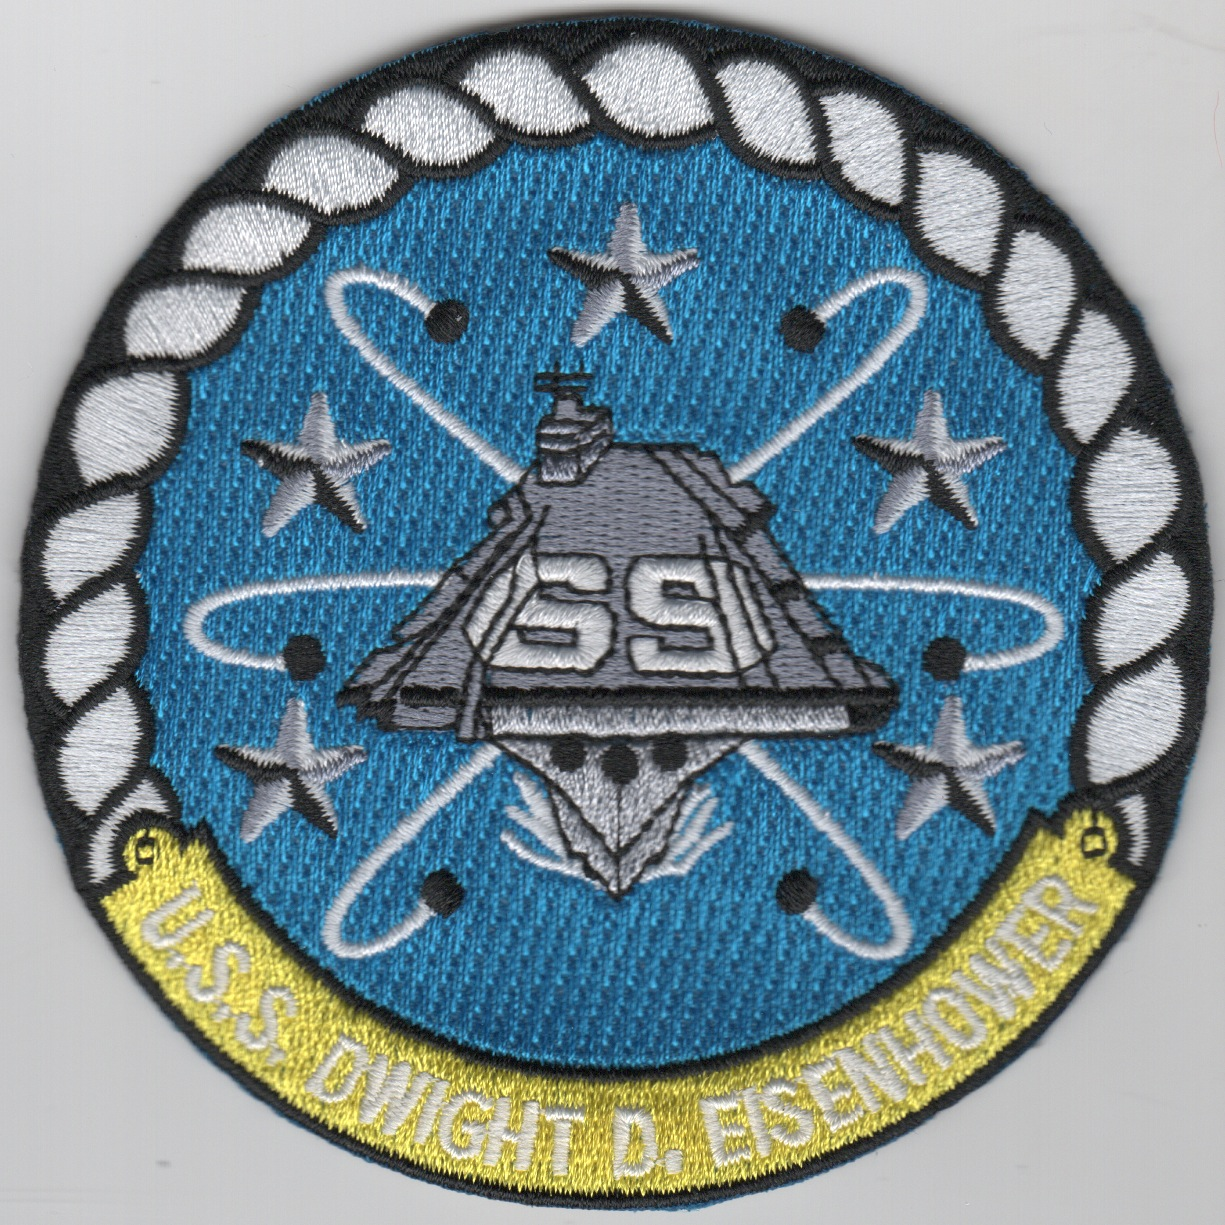 USS Dwight D. Eisenhower (CVN-69) Ship Patch